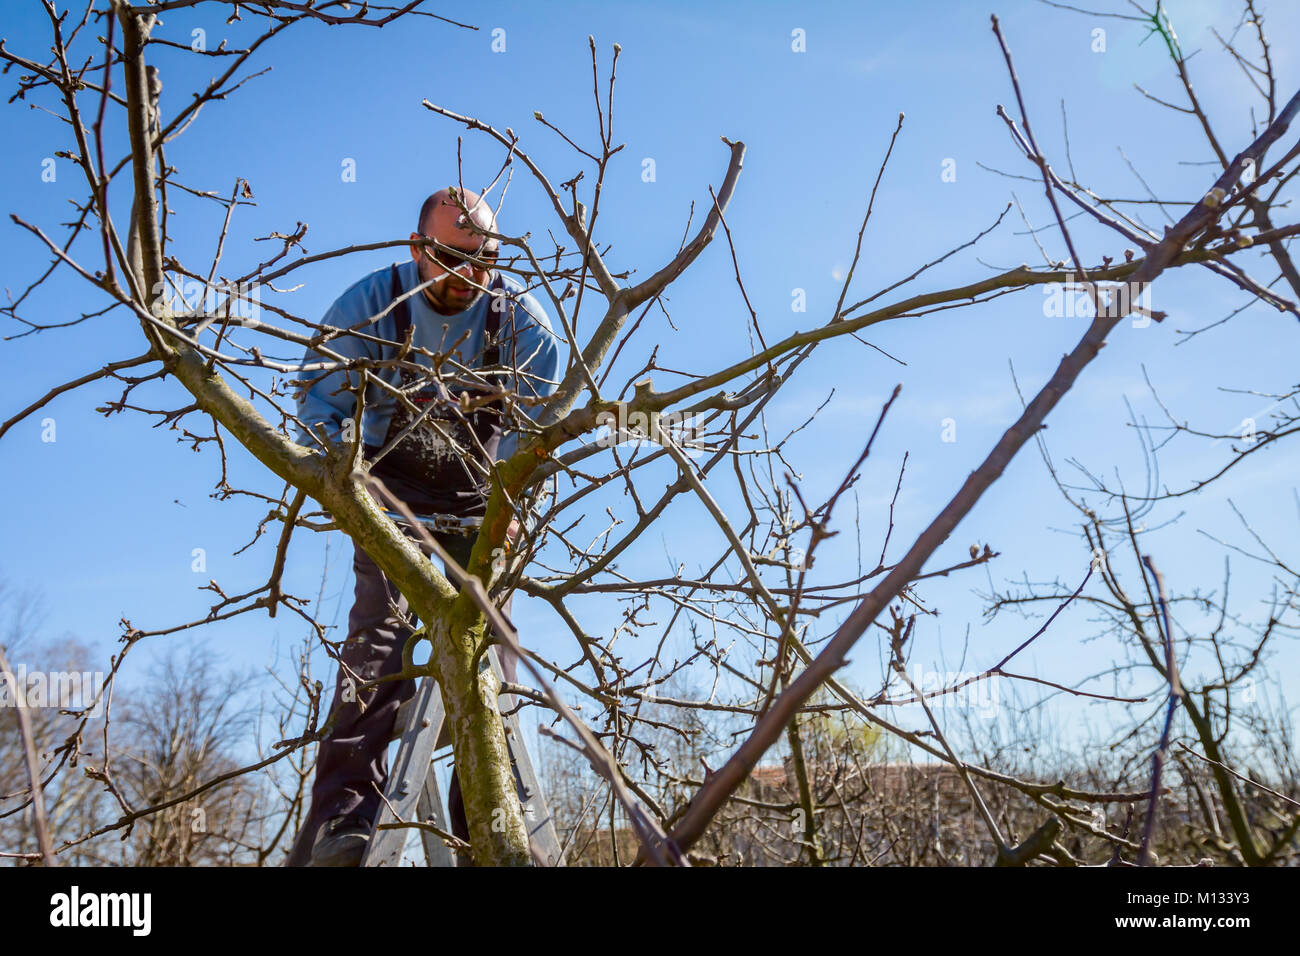 Branches Cut Fruit Tree Stock Photos Amp Branches Cut Fruit